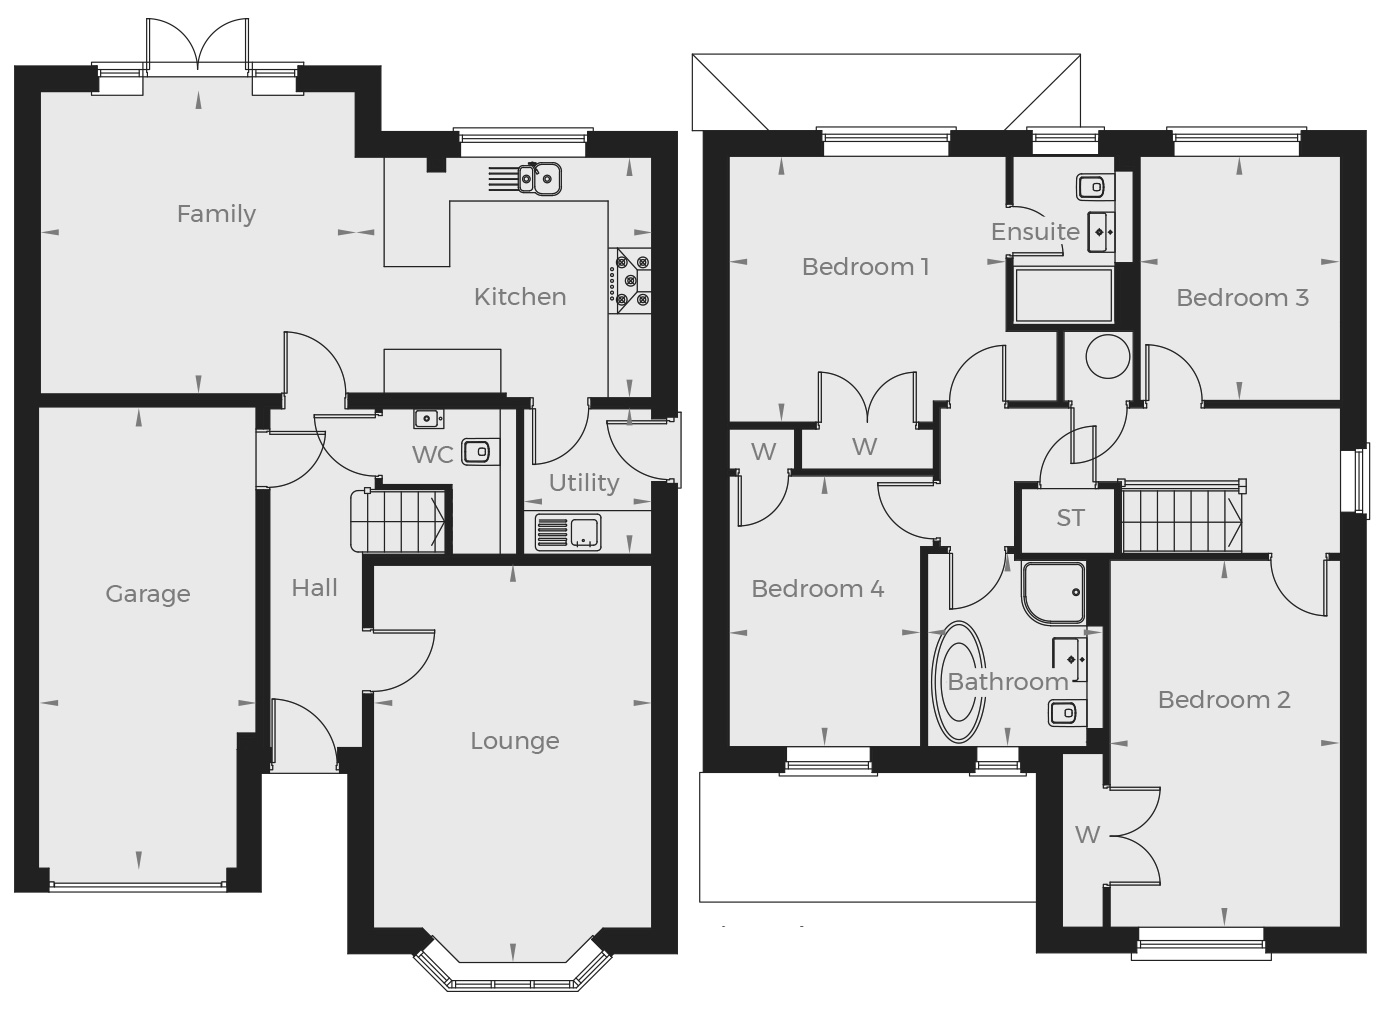 The-Bourne-Floor-Plan.jpg